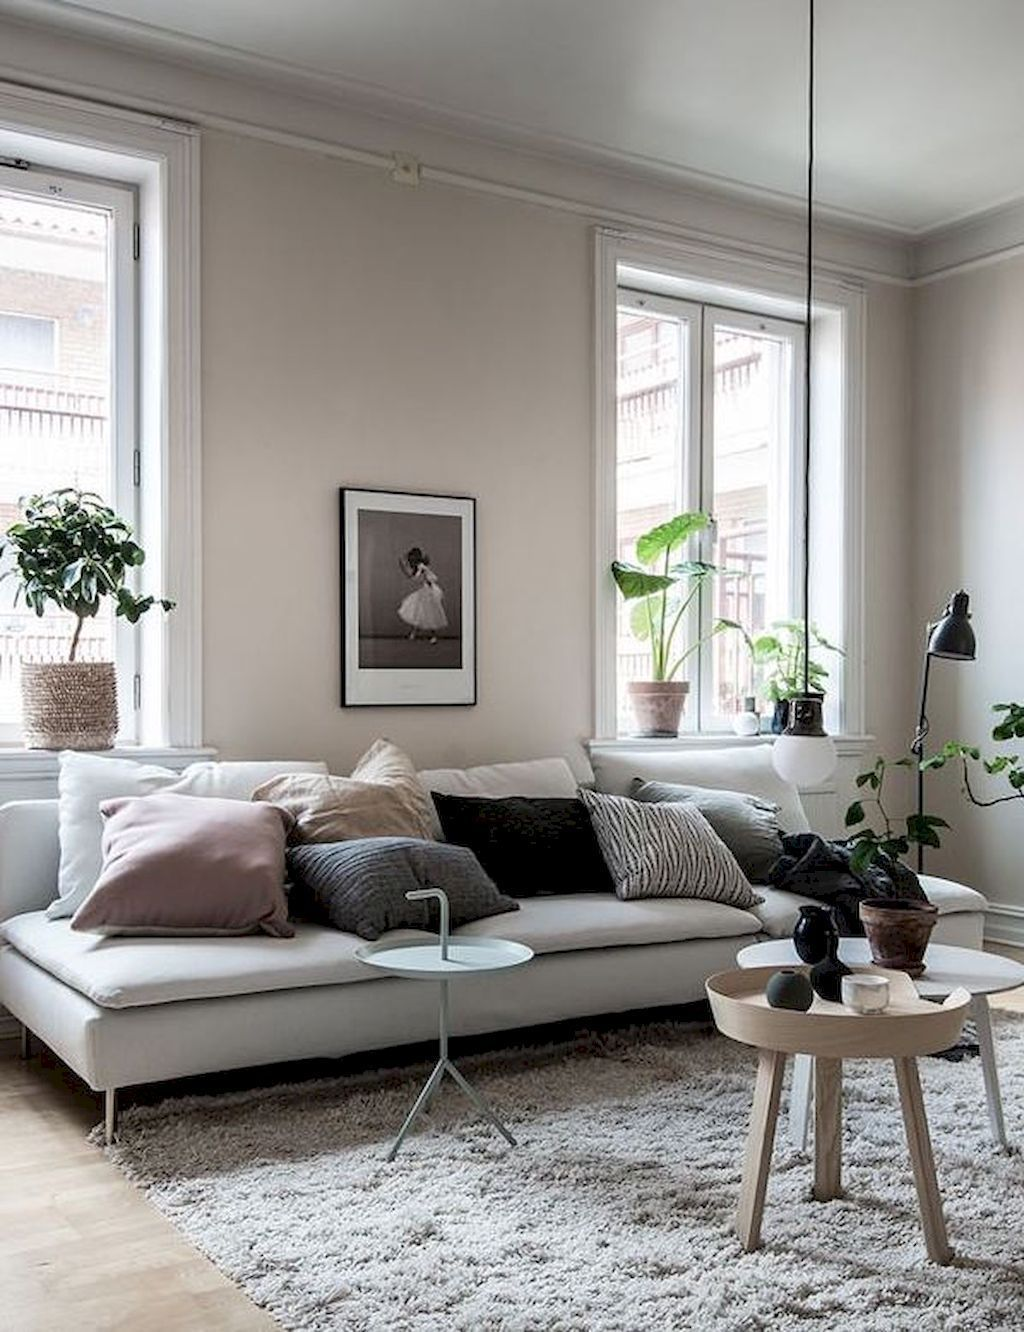 Awesome 41 Amazing Scandinavian Livingroom Decorations Ideas More At Https Homishome Com Living Room Scandinavian Minimalist Living Room Beige Living Rooms